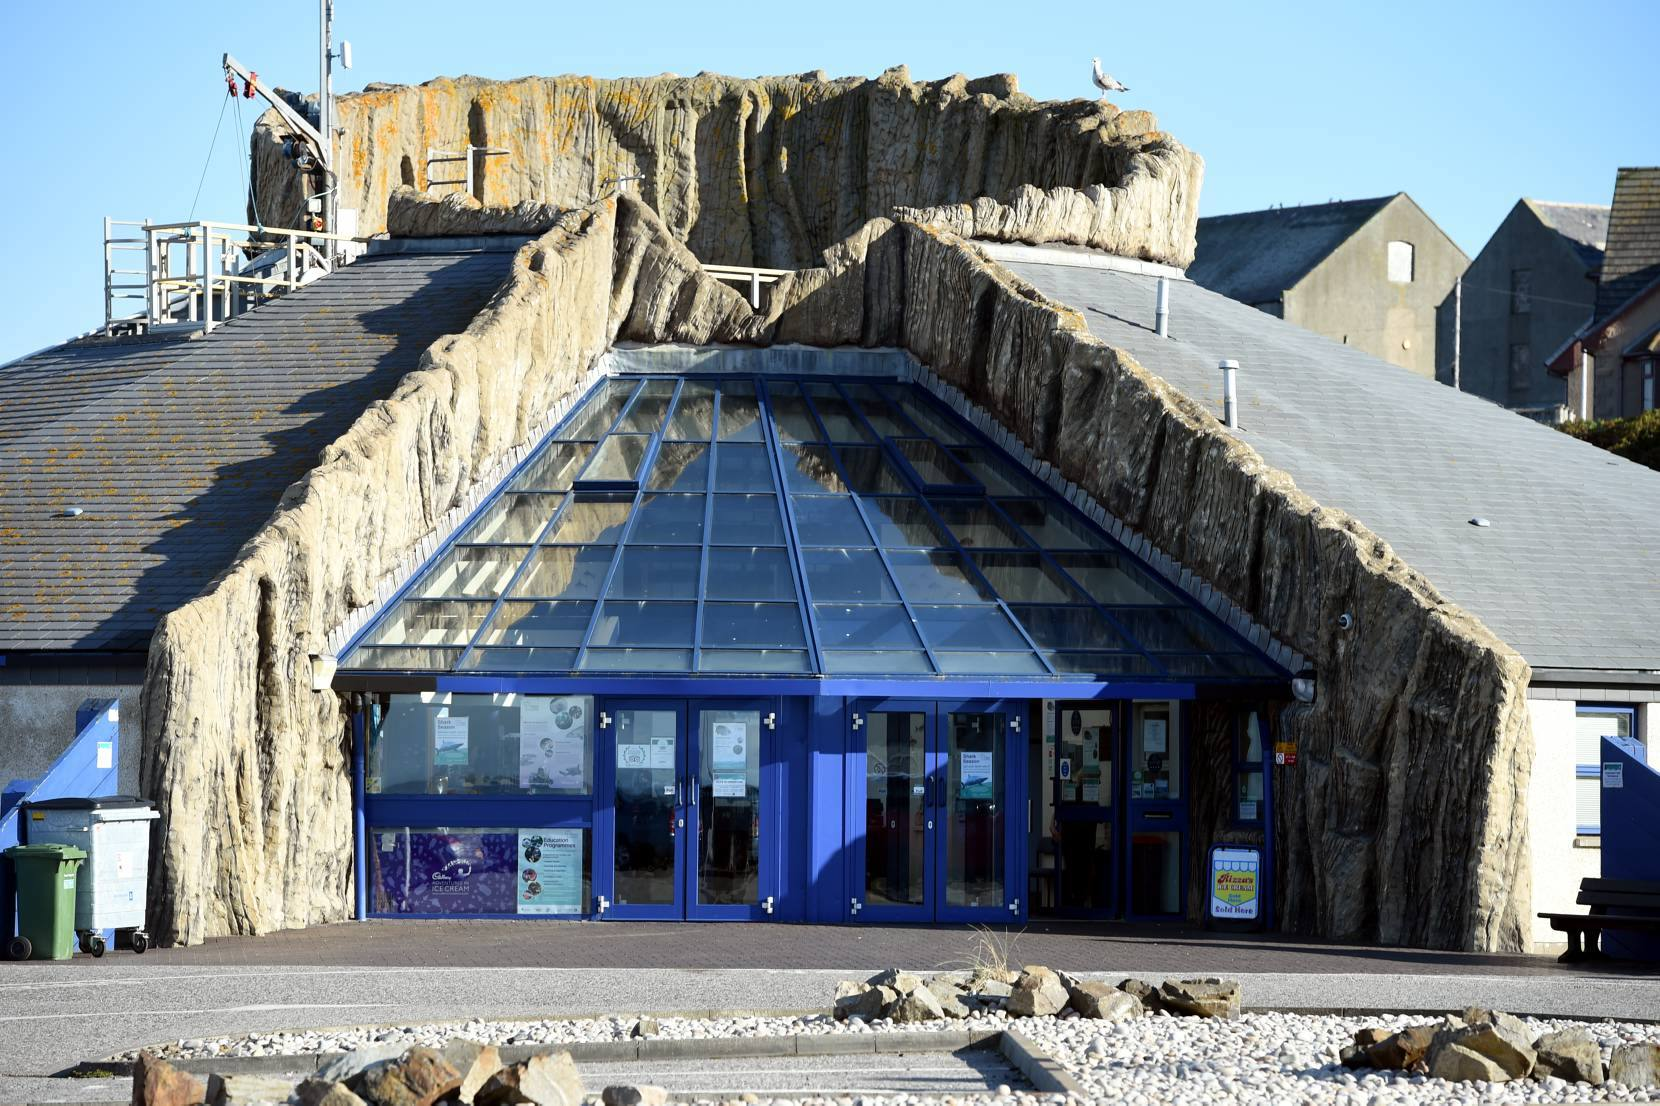 North-east Attraction To Close For 12 Weeks For Work